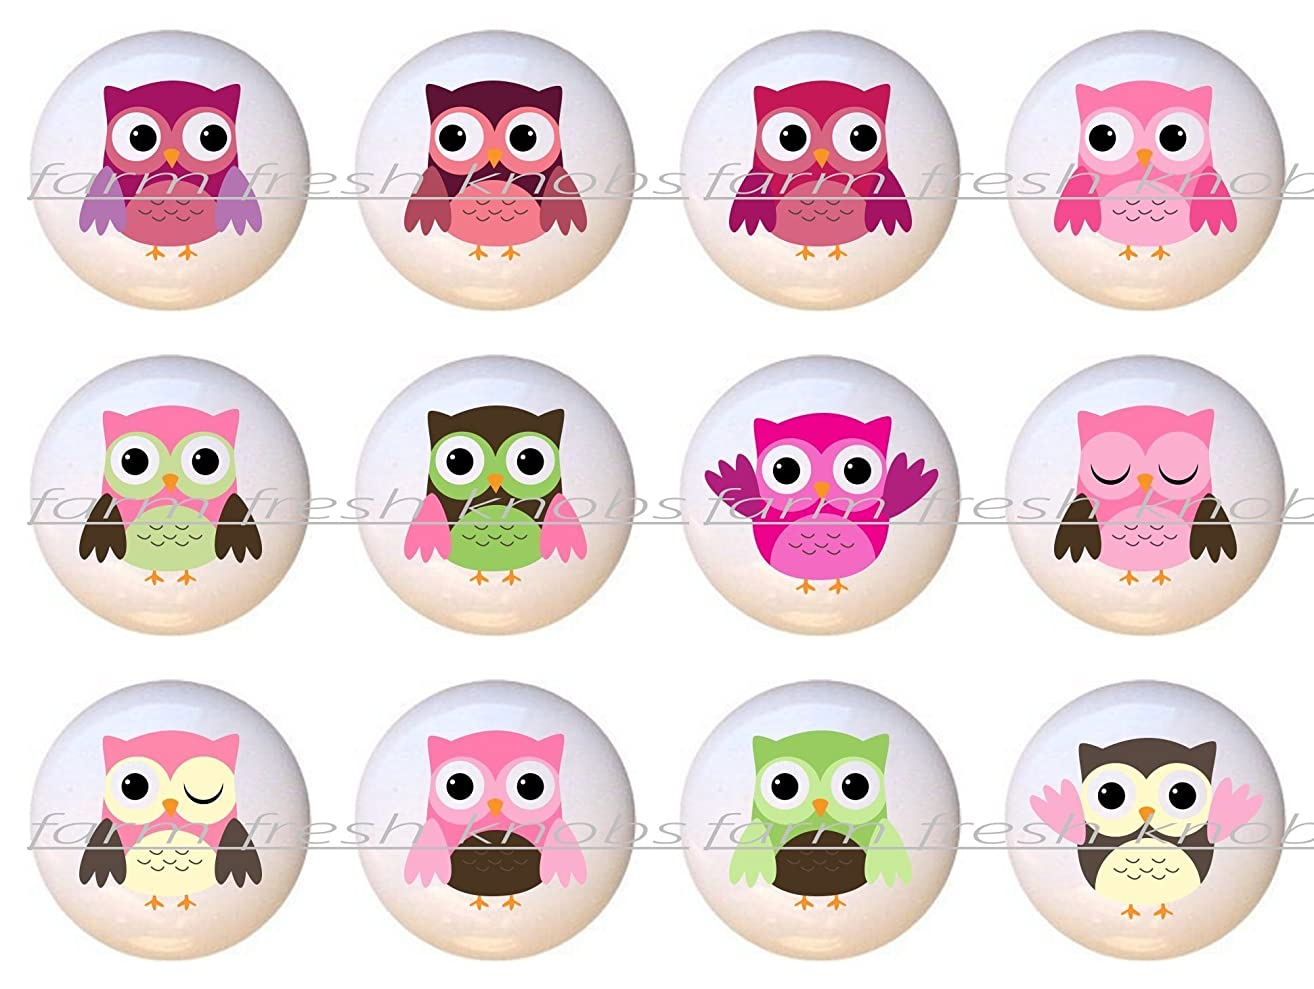 SET OF 12 KNOBS - Baby Girl Owls by PP - DECORATIVE Glossy CERAMIC Cupboard Cabinet PULLS Dresser Drawer KNOBS